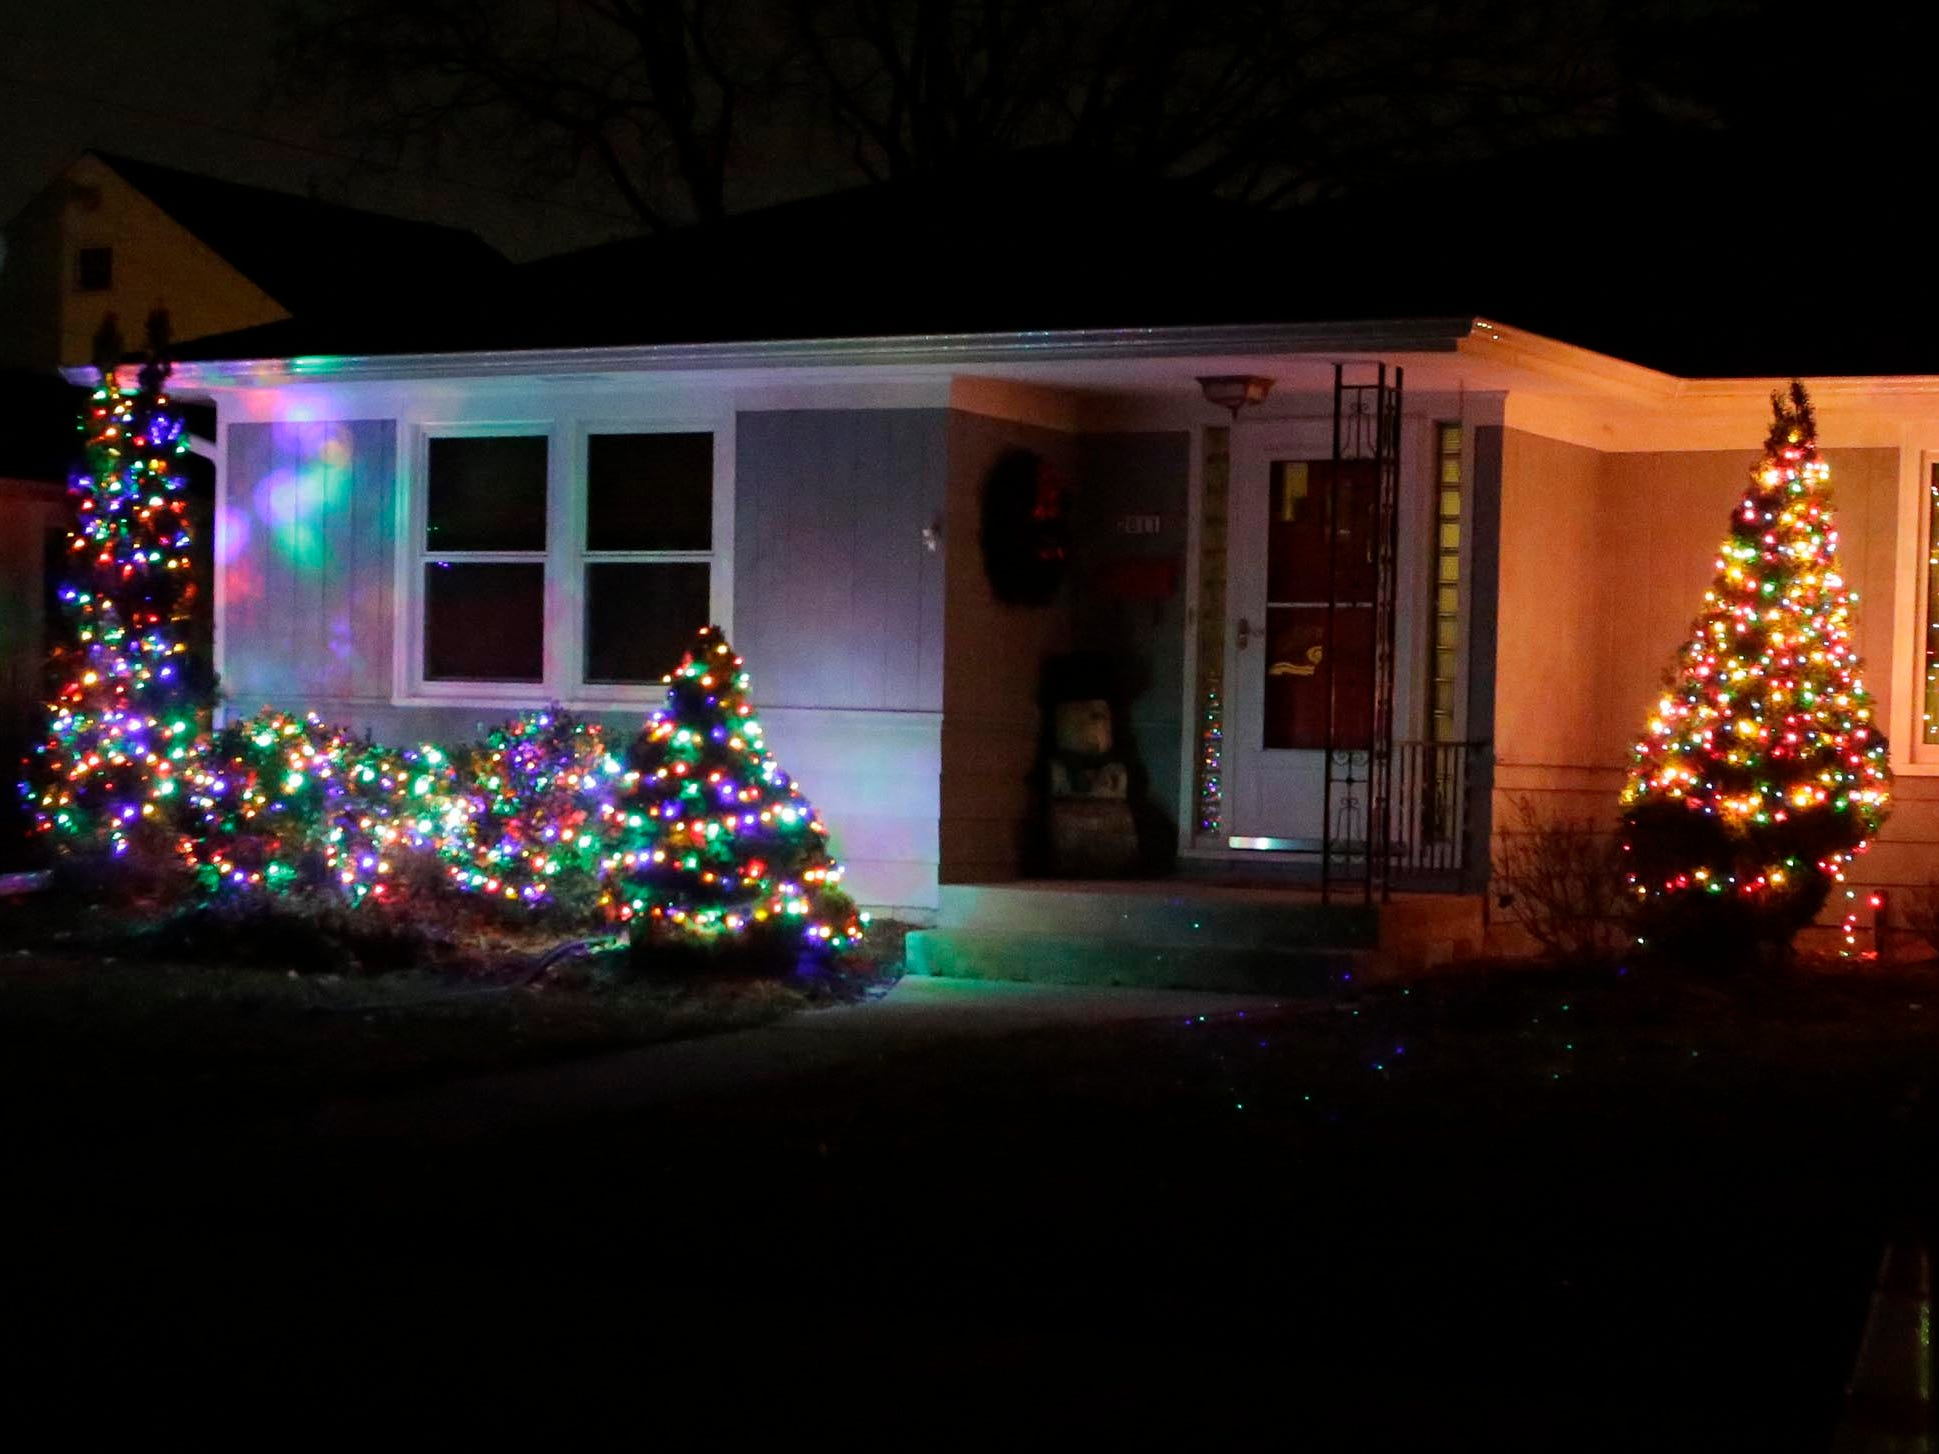 Bushes and trees glow with light, Thursday, December 13, 2018, in Sheboygan, Wis.